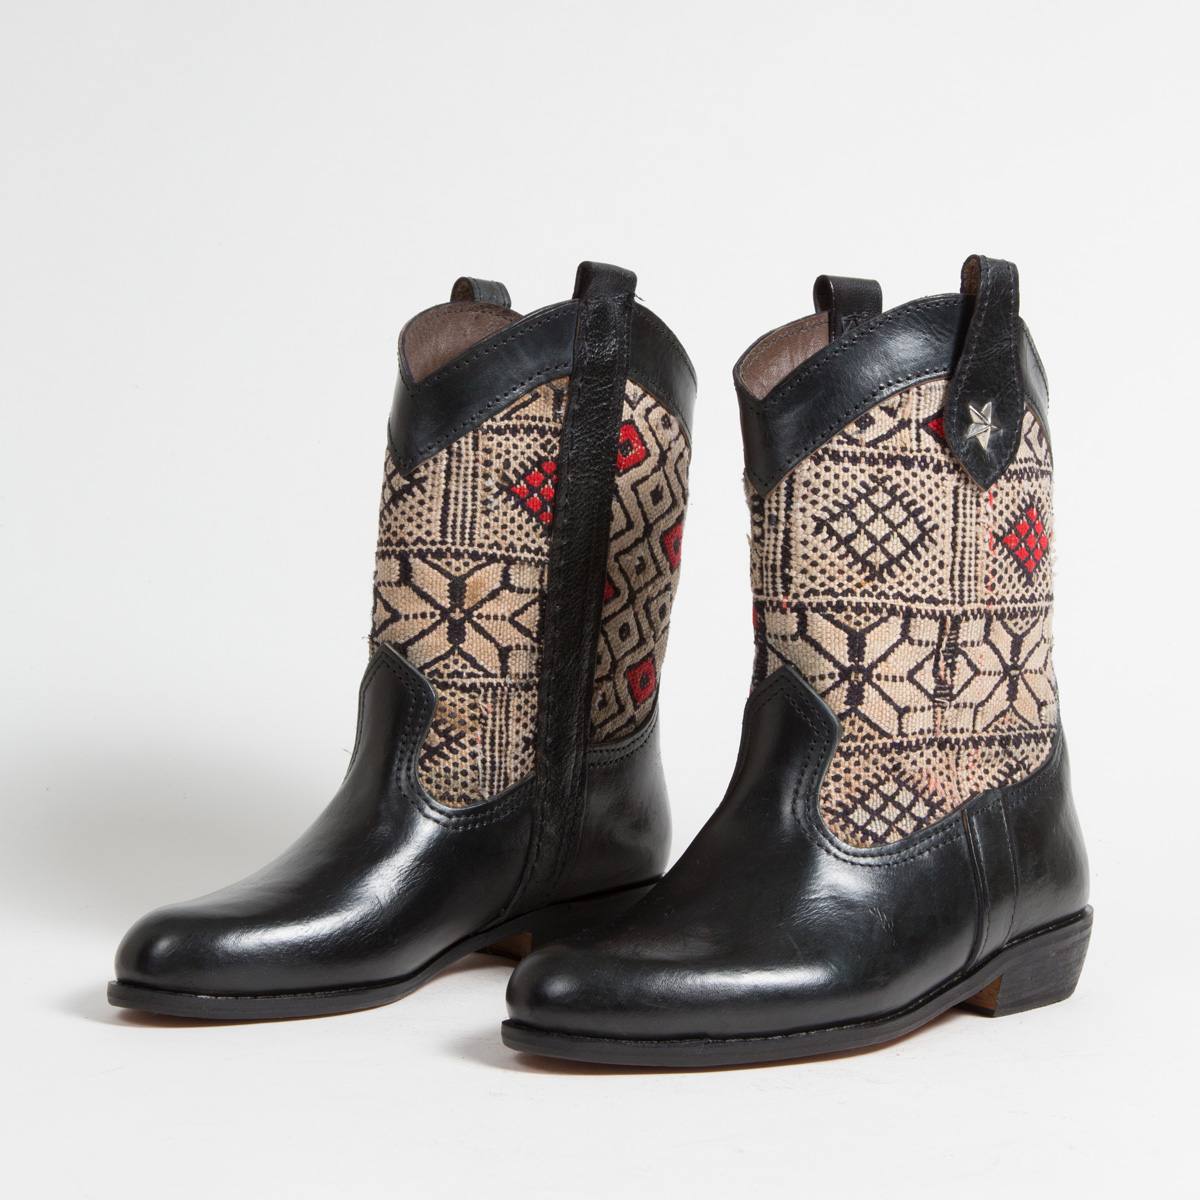 Bottines Kilim cuir mababouche artisanales (Réf. MN2-37)